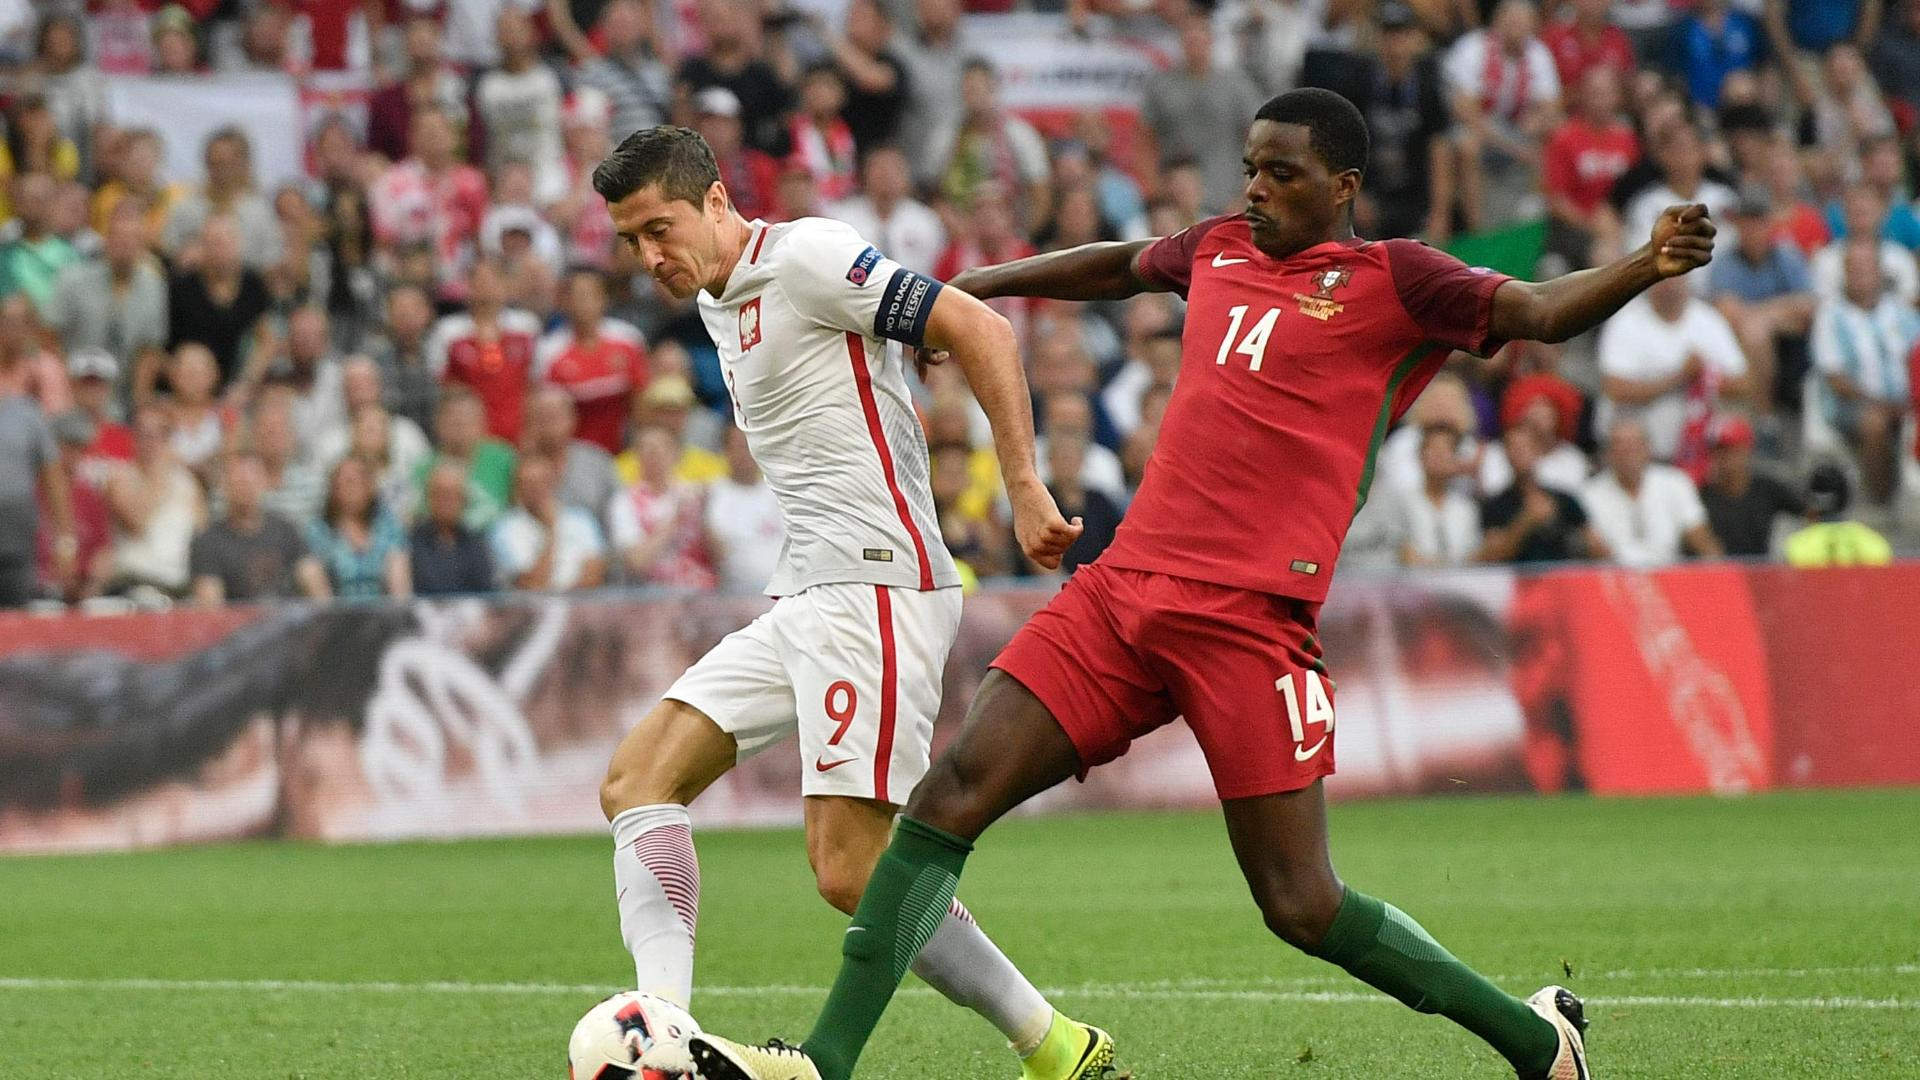 Poland's early goal shocks Portugal